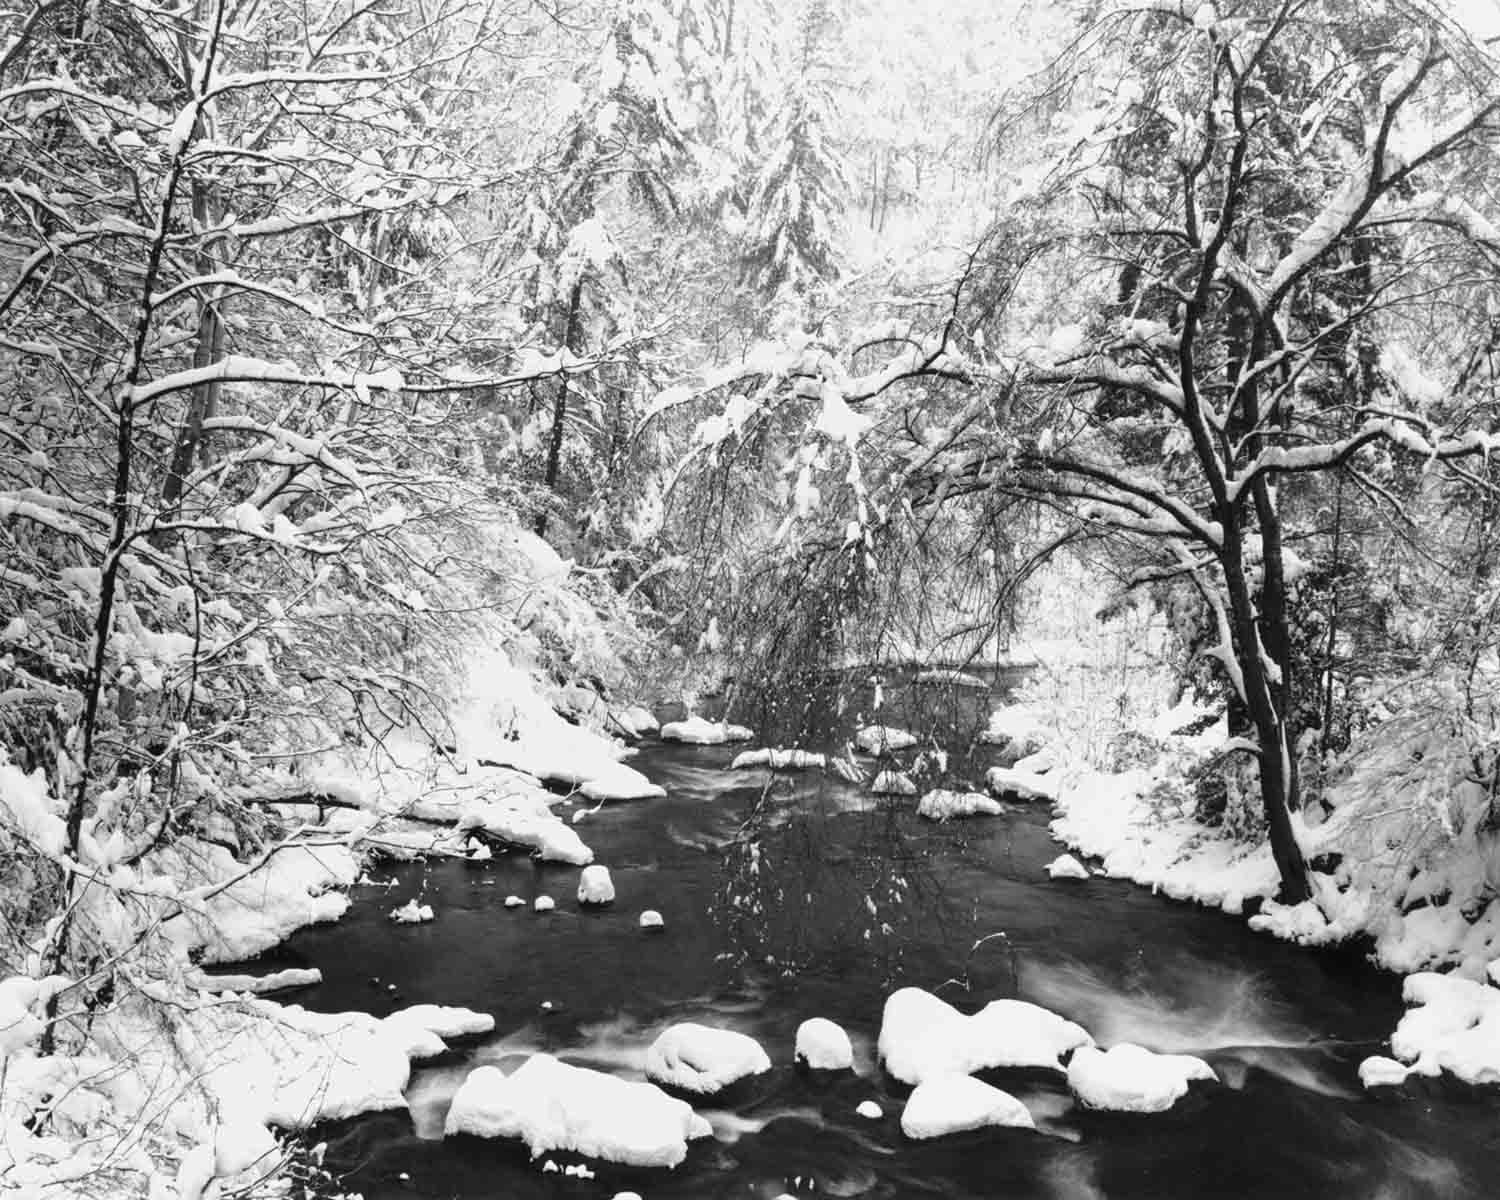 Spring Creek in heavy snow, 1987 (page 15 in book)